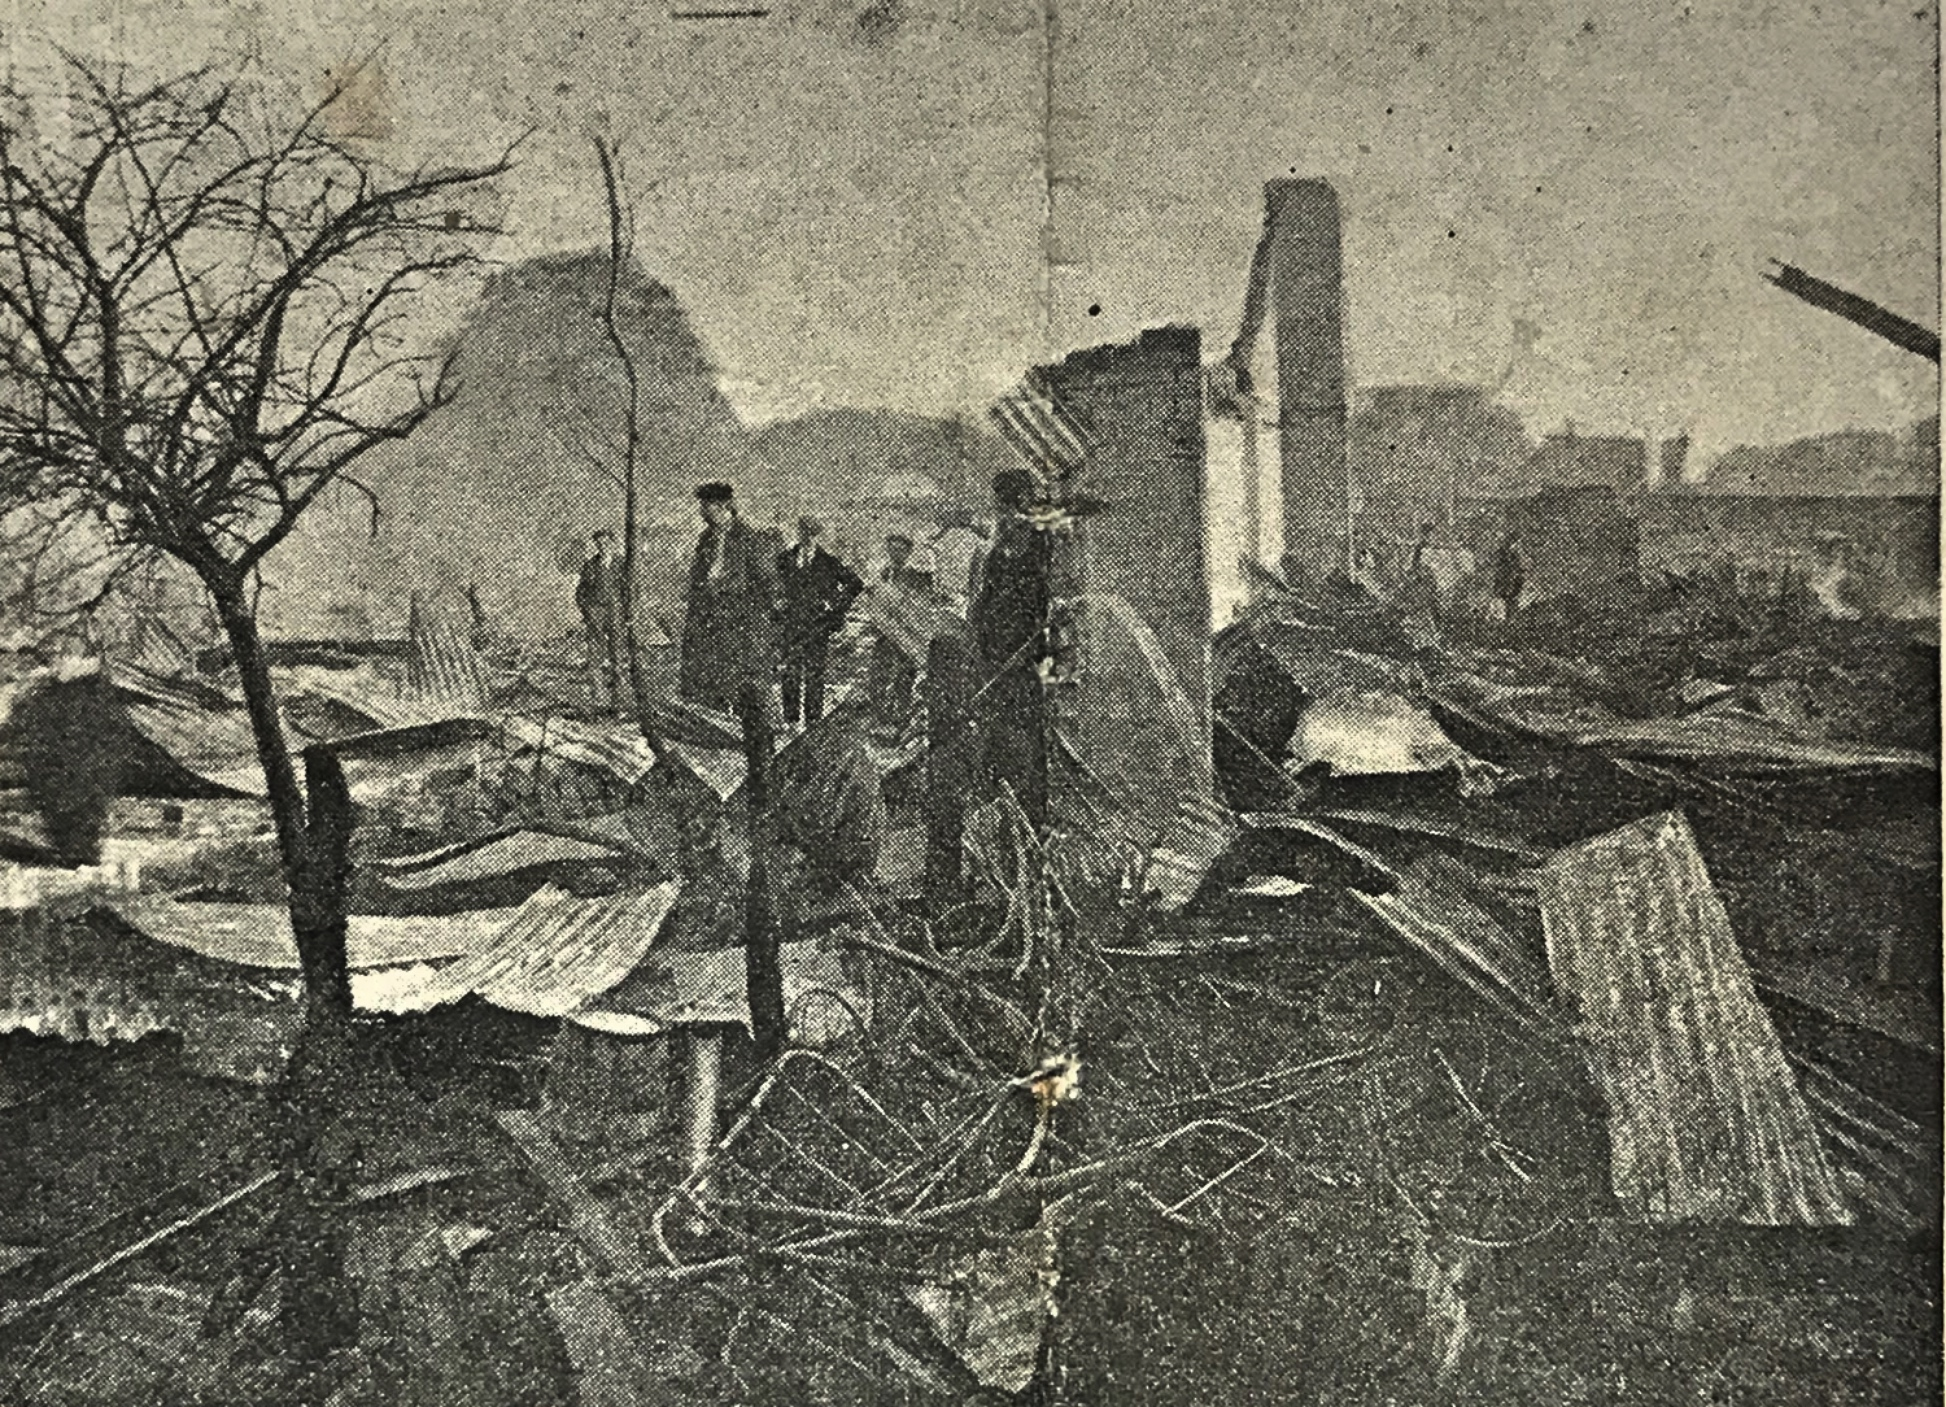 Major Fire in Spalding July 1900